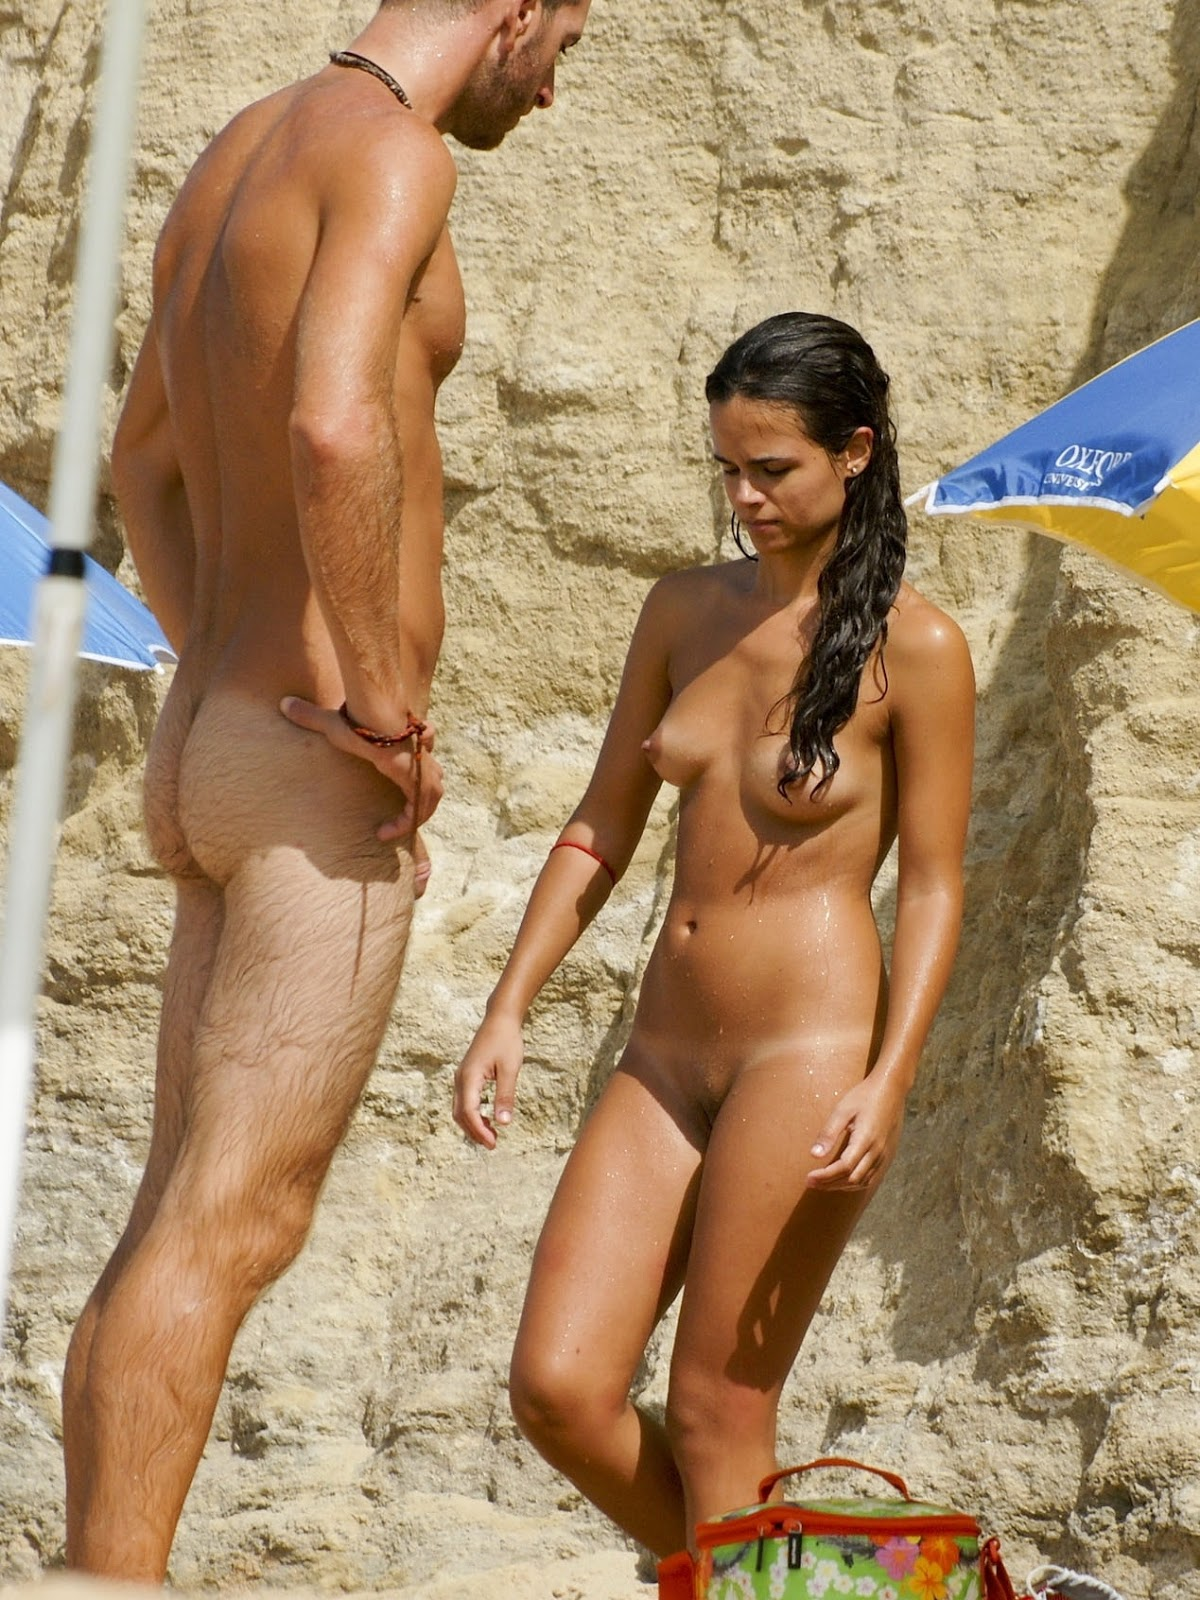 Nudism - Photo - Hq  Nudists - Couple - Nude Beach-3632